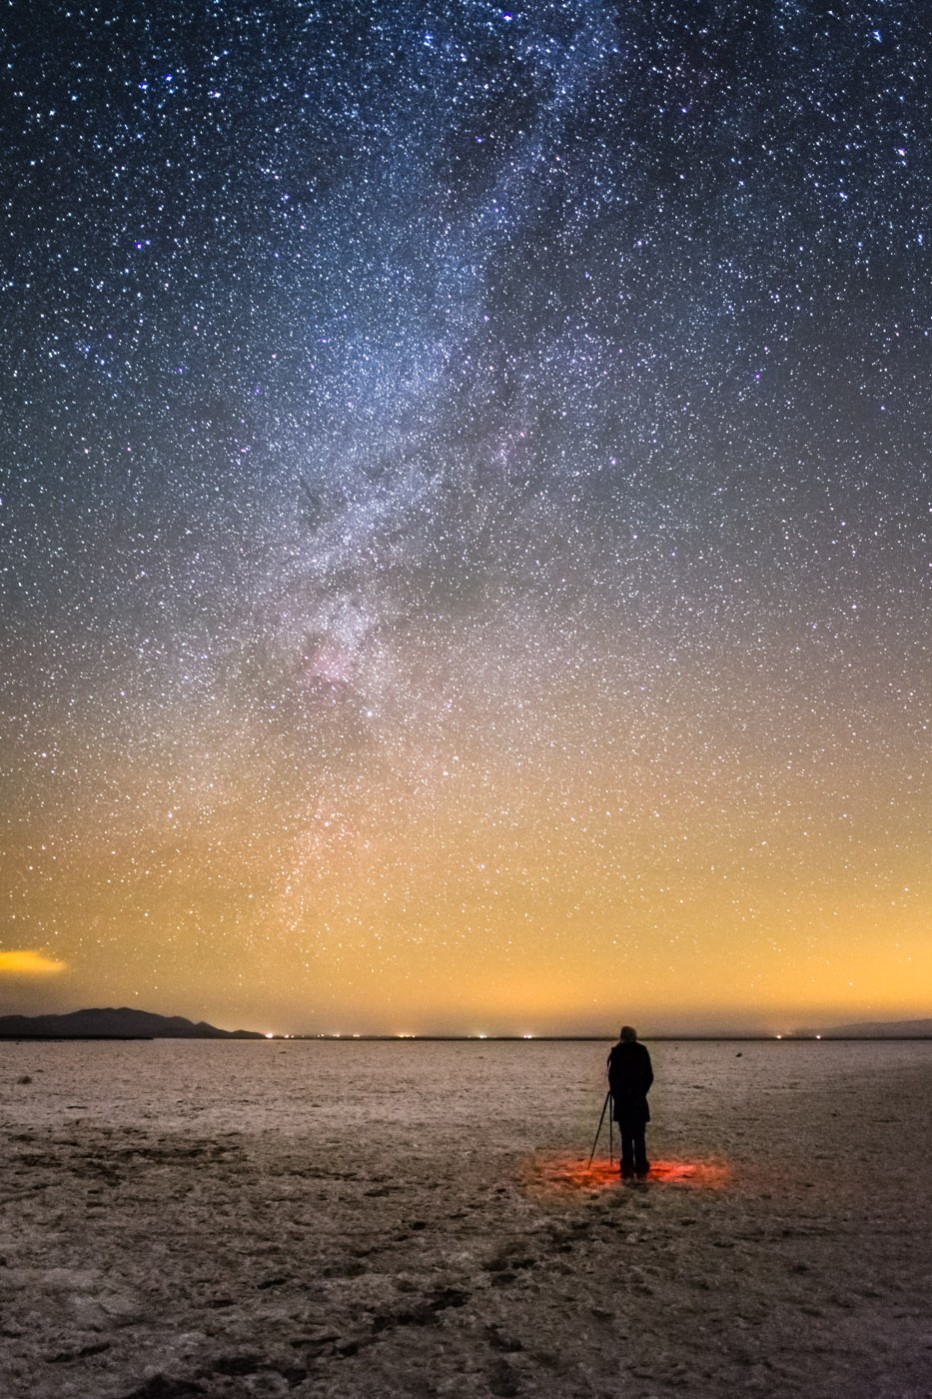 Soda Lake and the Milky Way